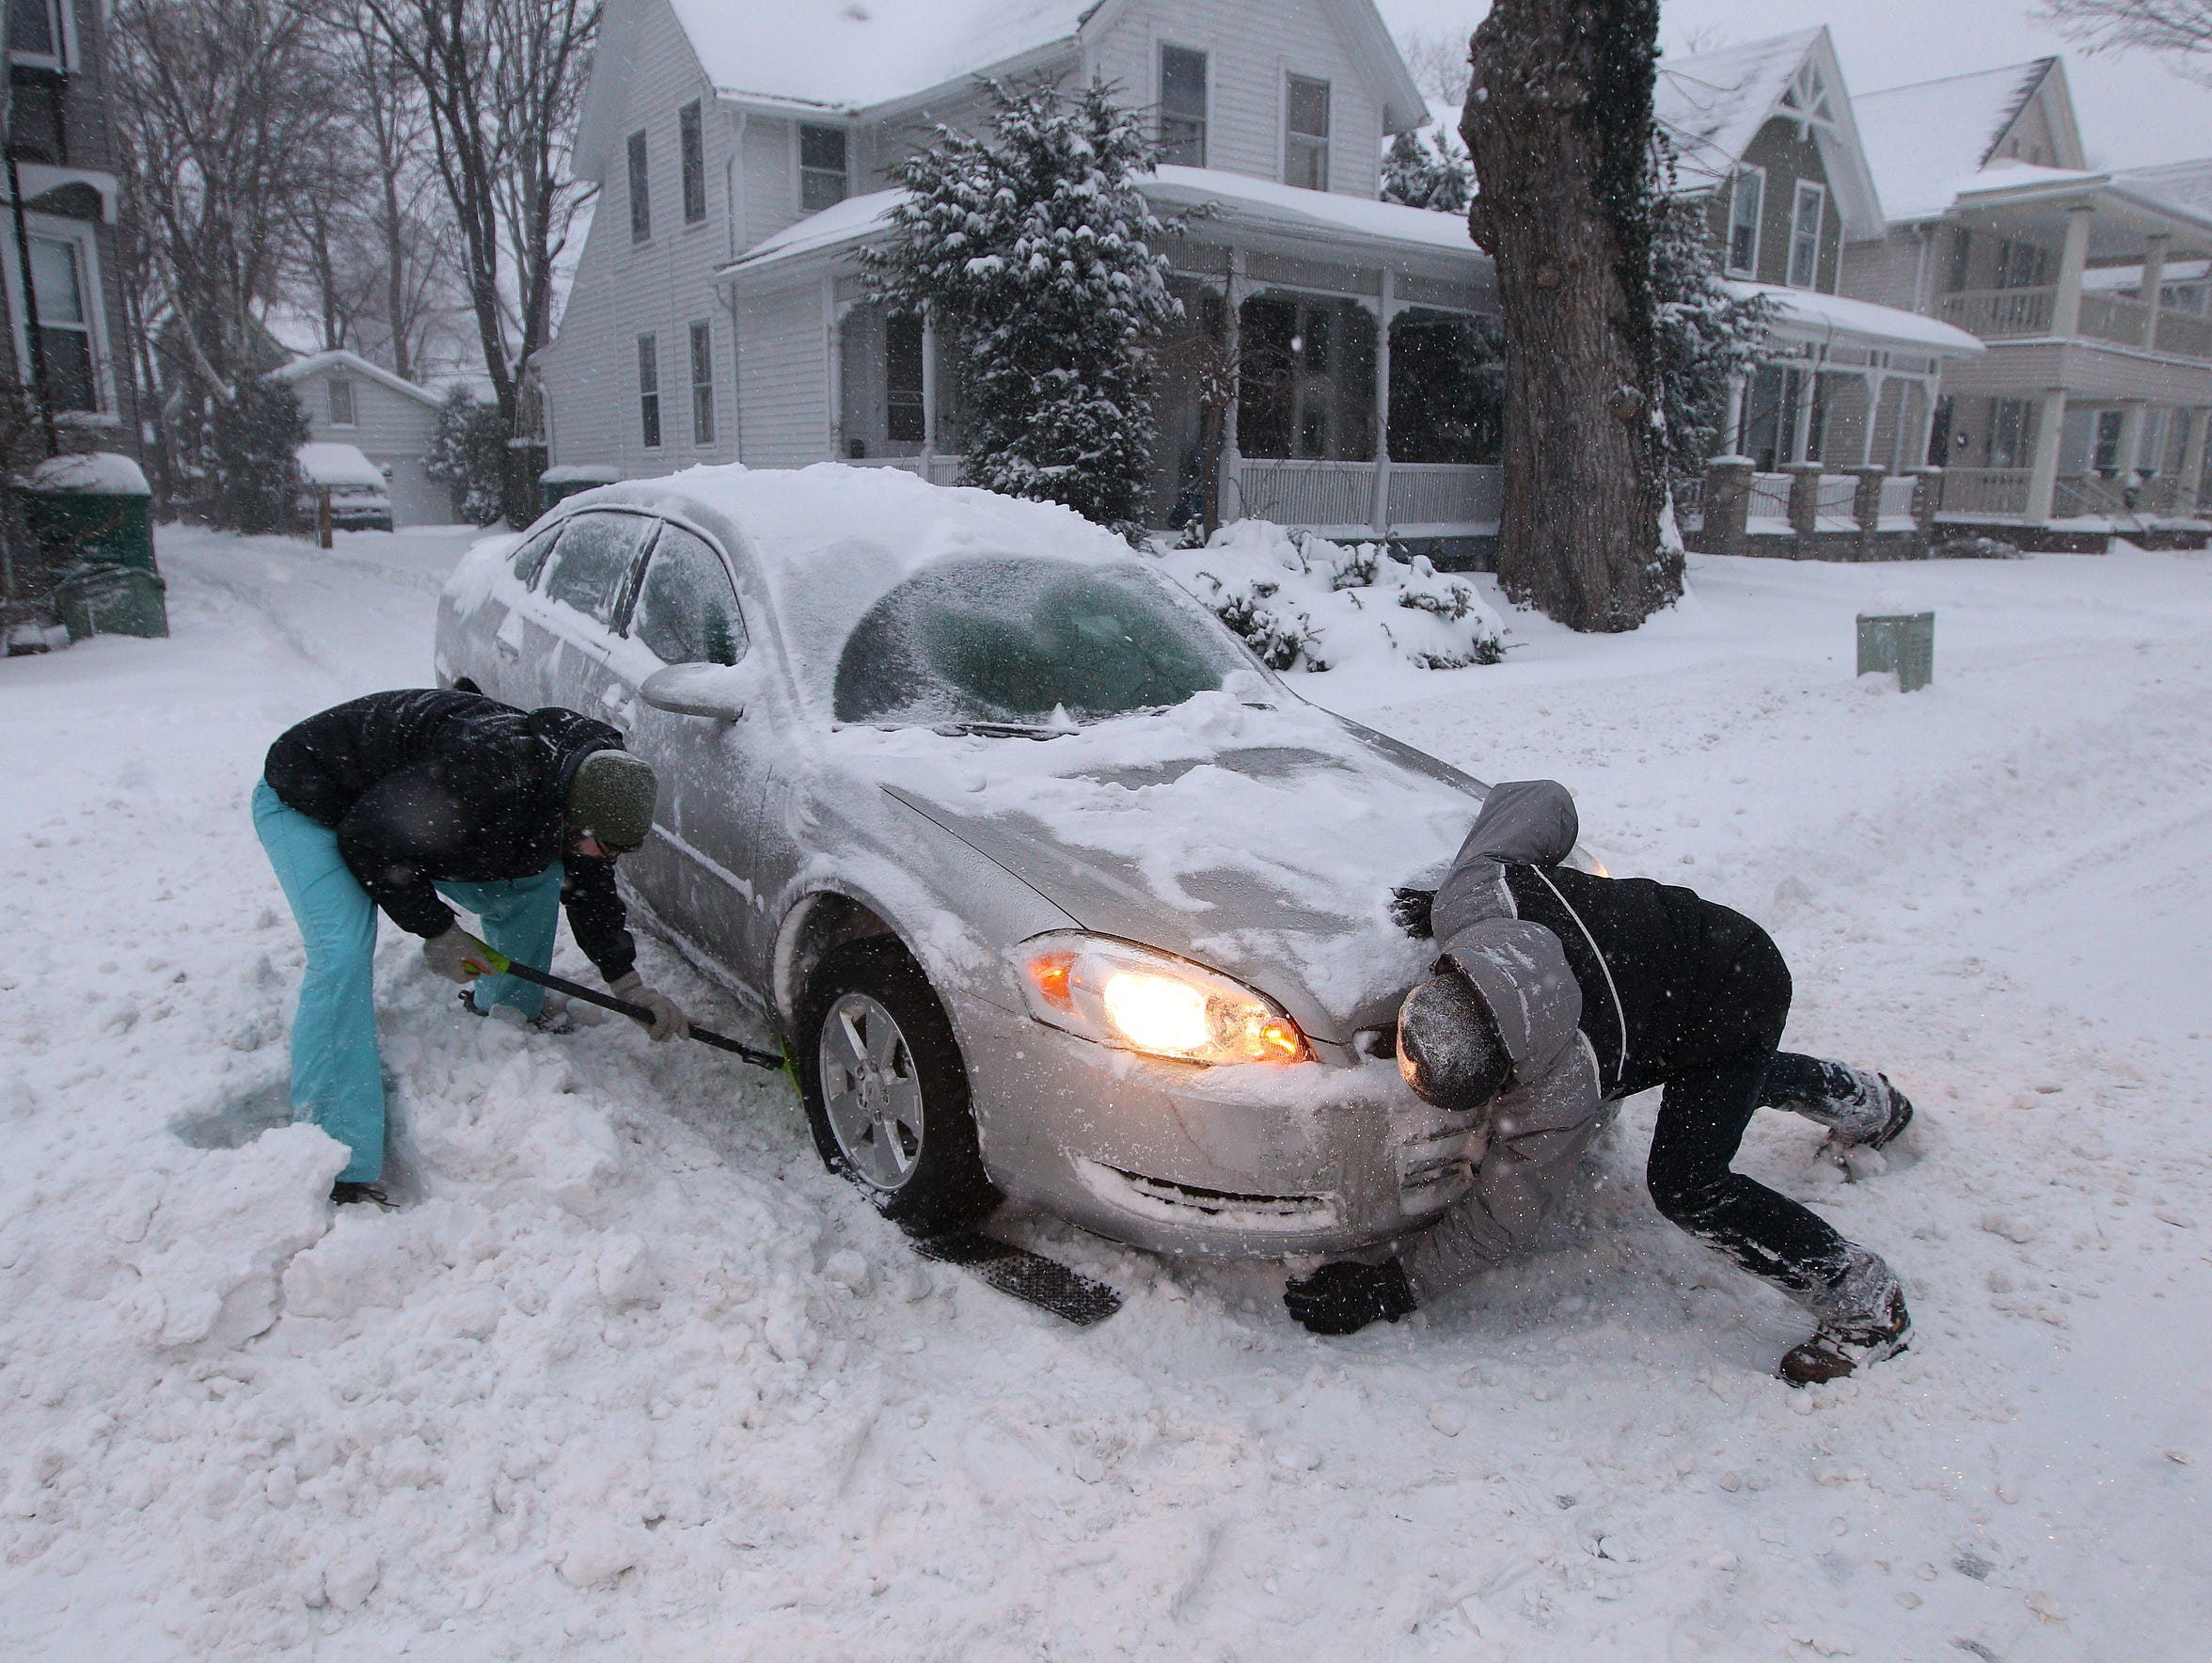 Matthew Kotula, right, got his car stuck in the snow